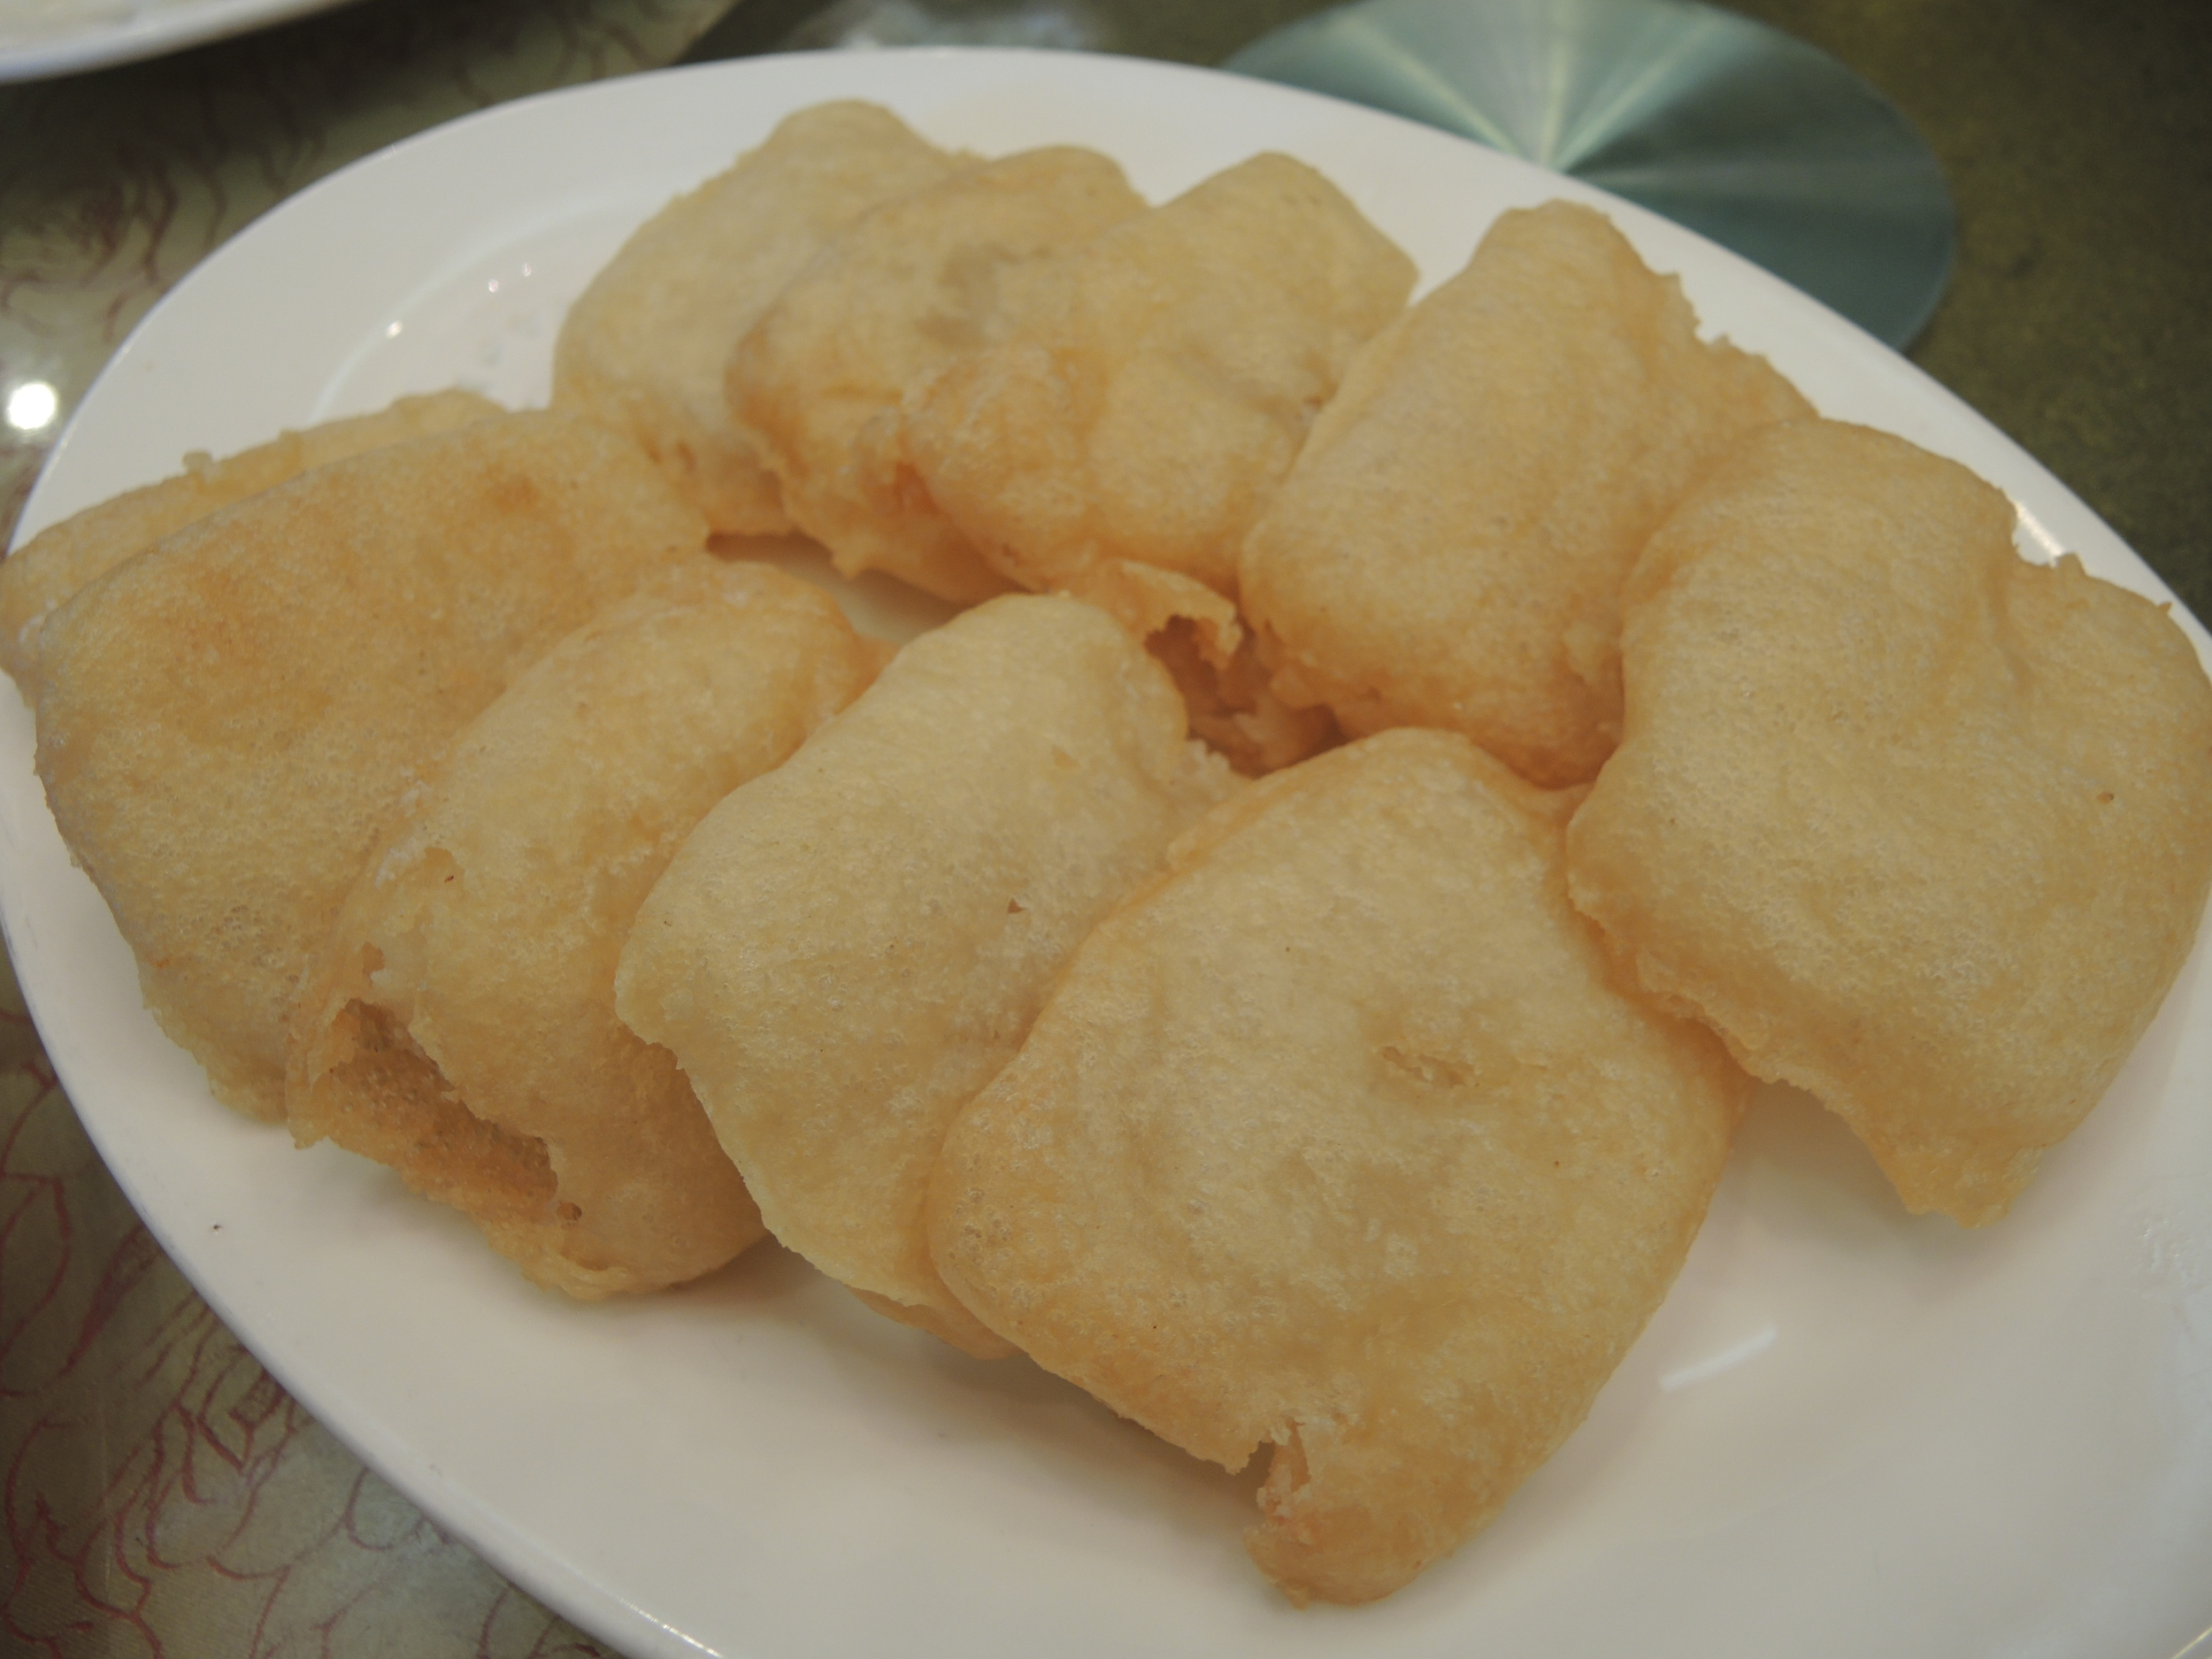 fried sugar pastry